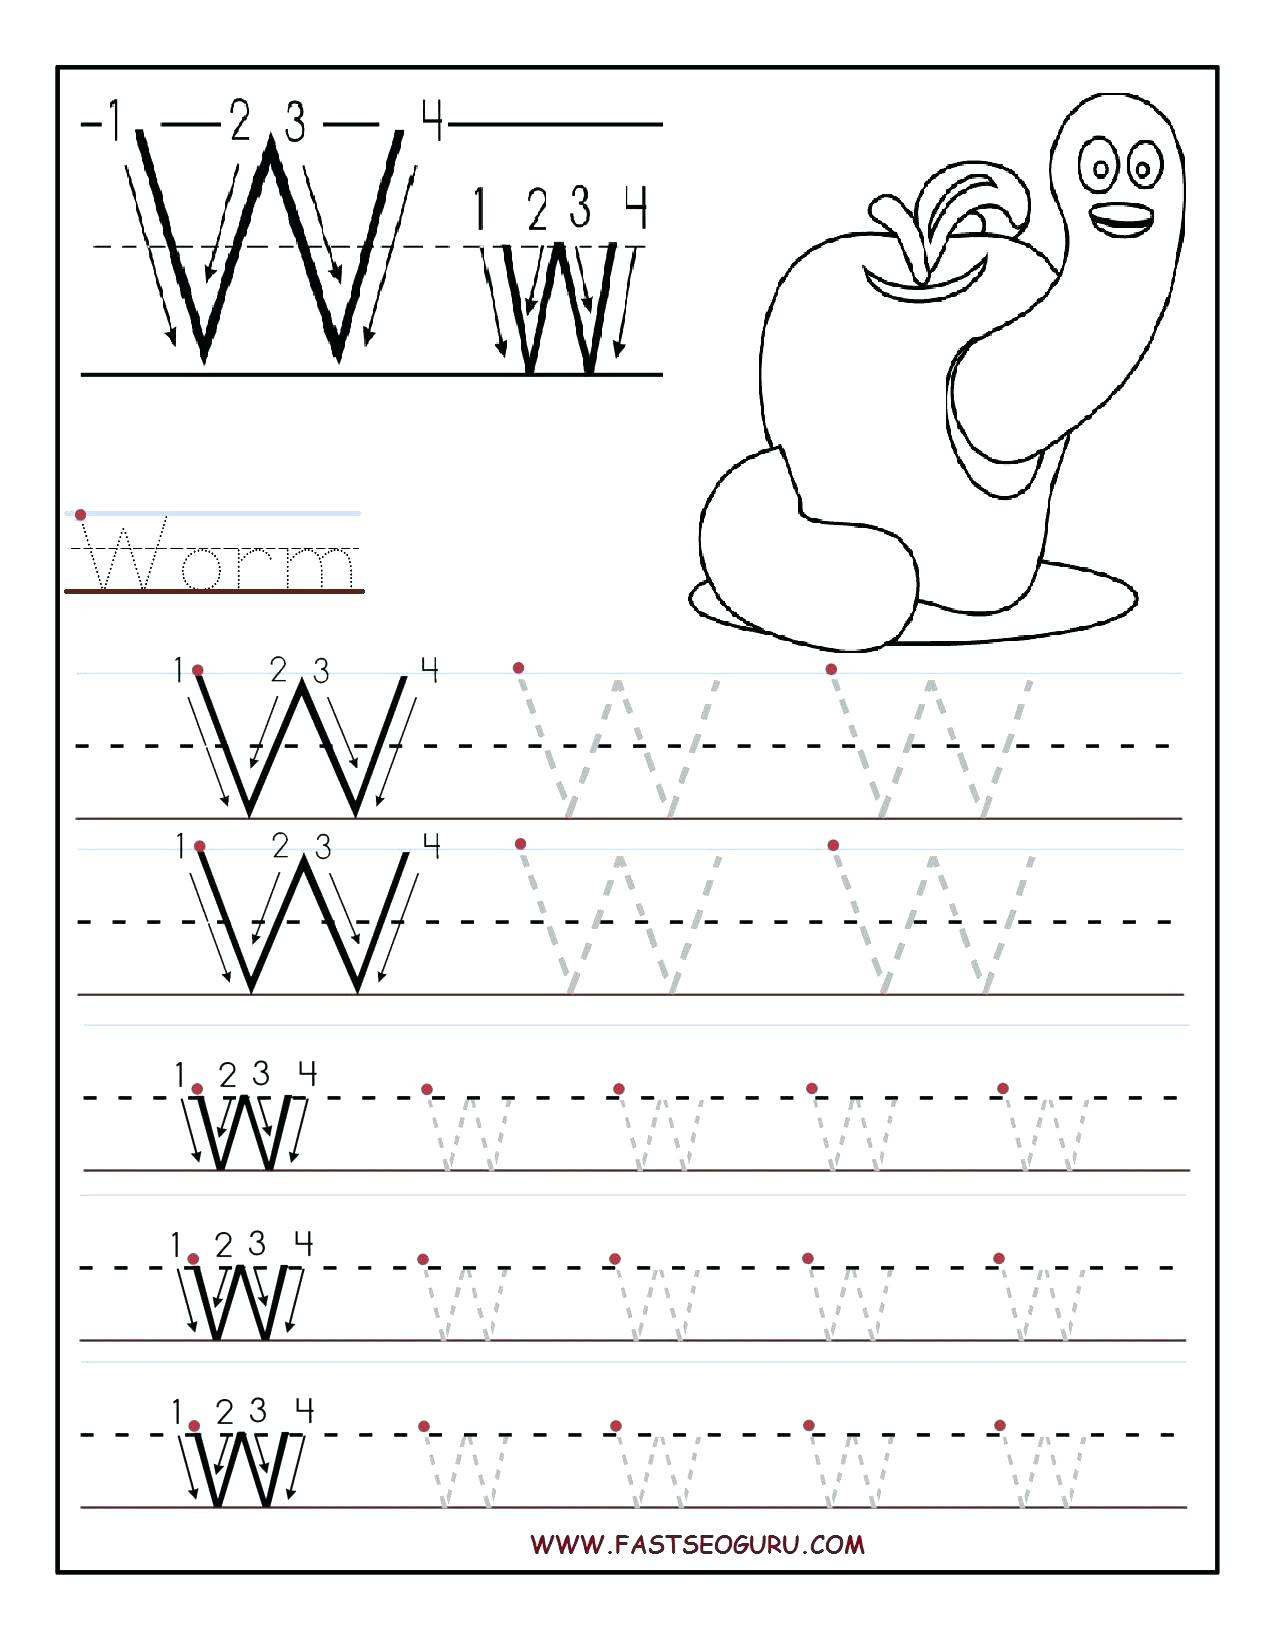 Alphabet Worksheets For 2 Year Olds – Callumnicholls.club inside Alphabet Worksheets For 2 Year Olds